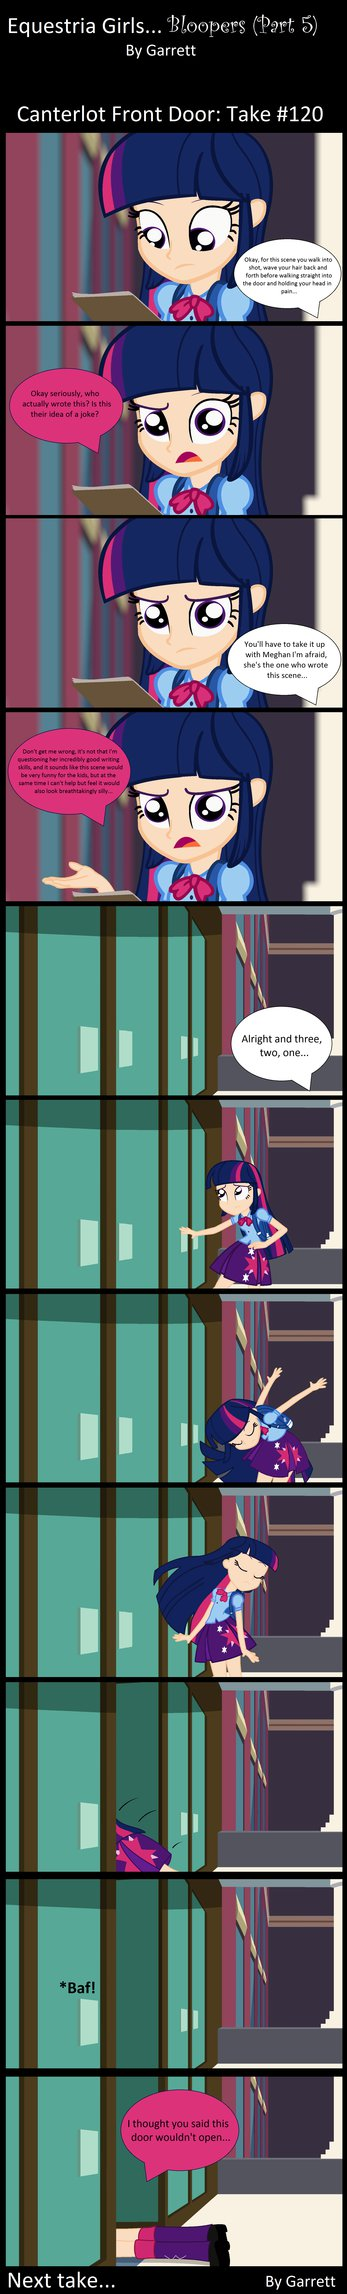 Equestria Girls: Bloopers (Part 5) by GarrettheGarret